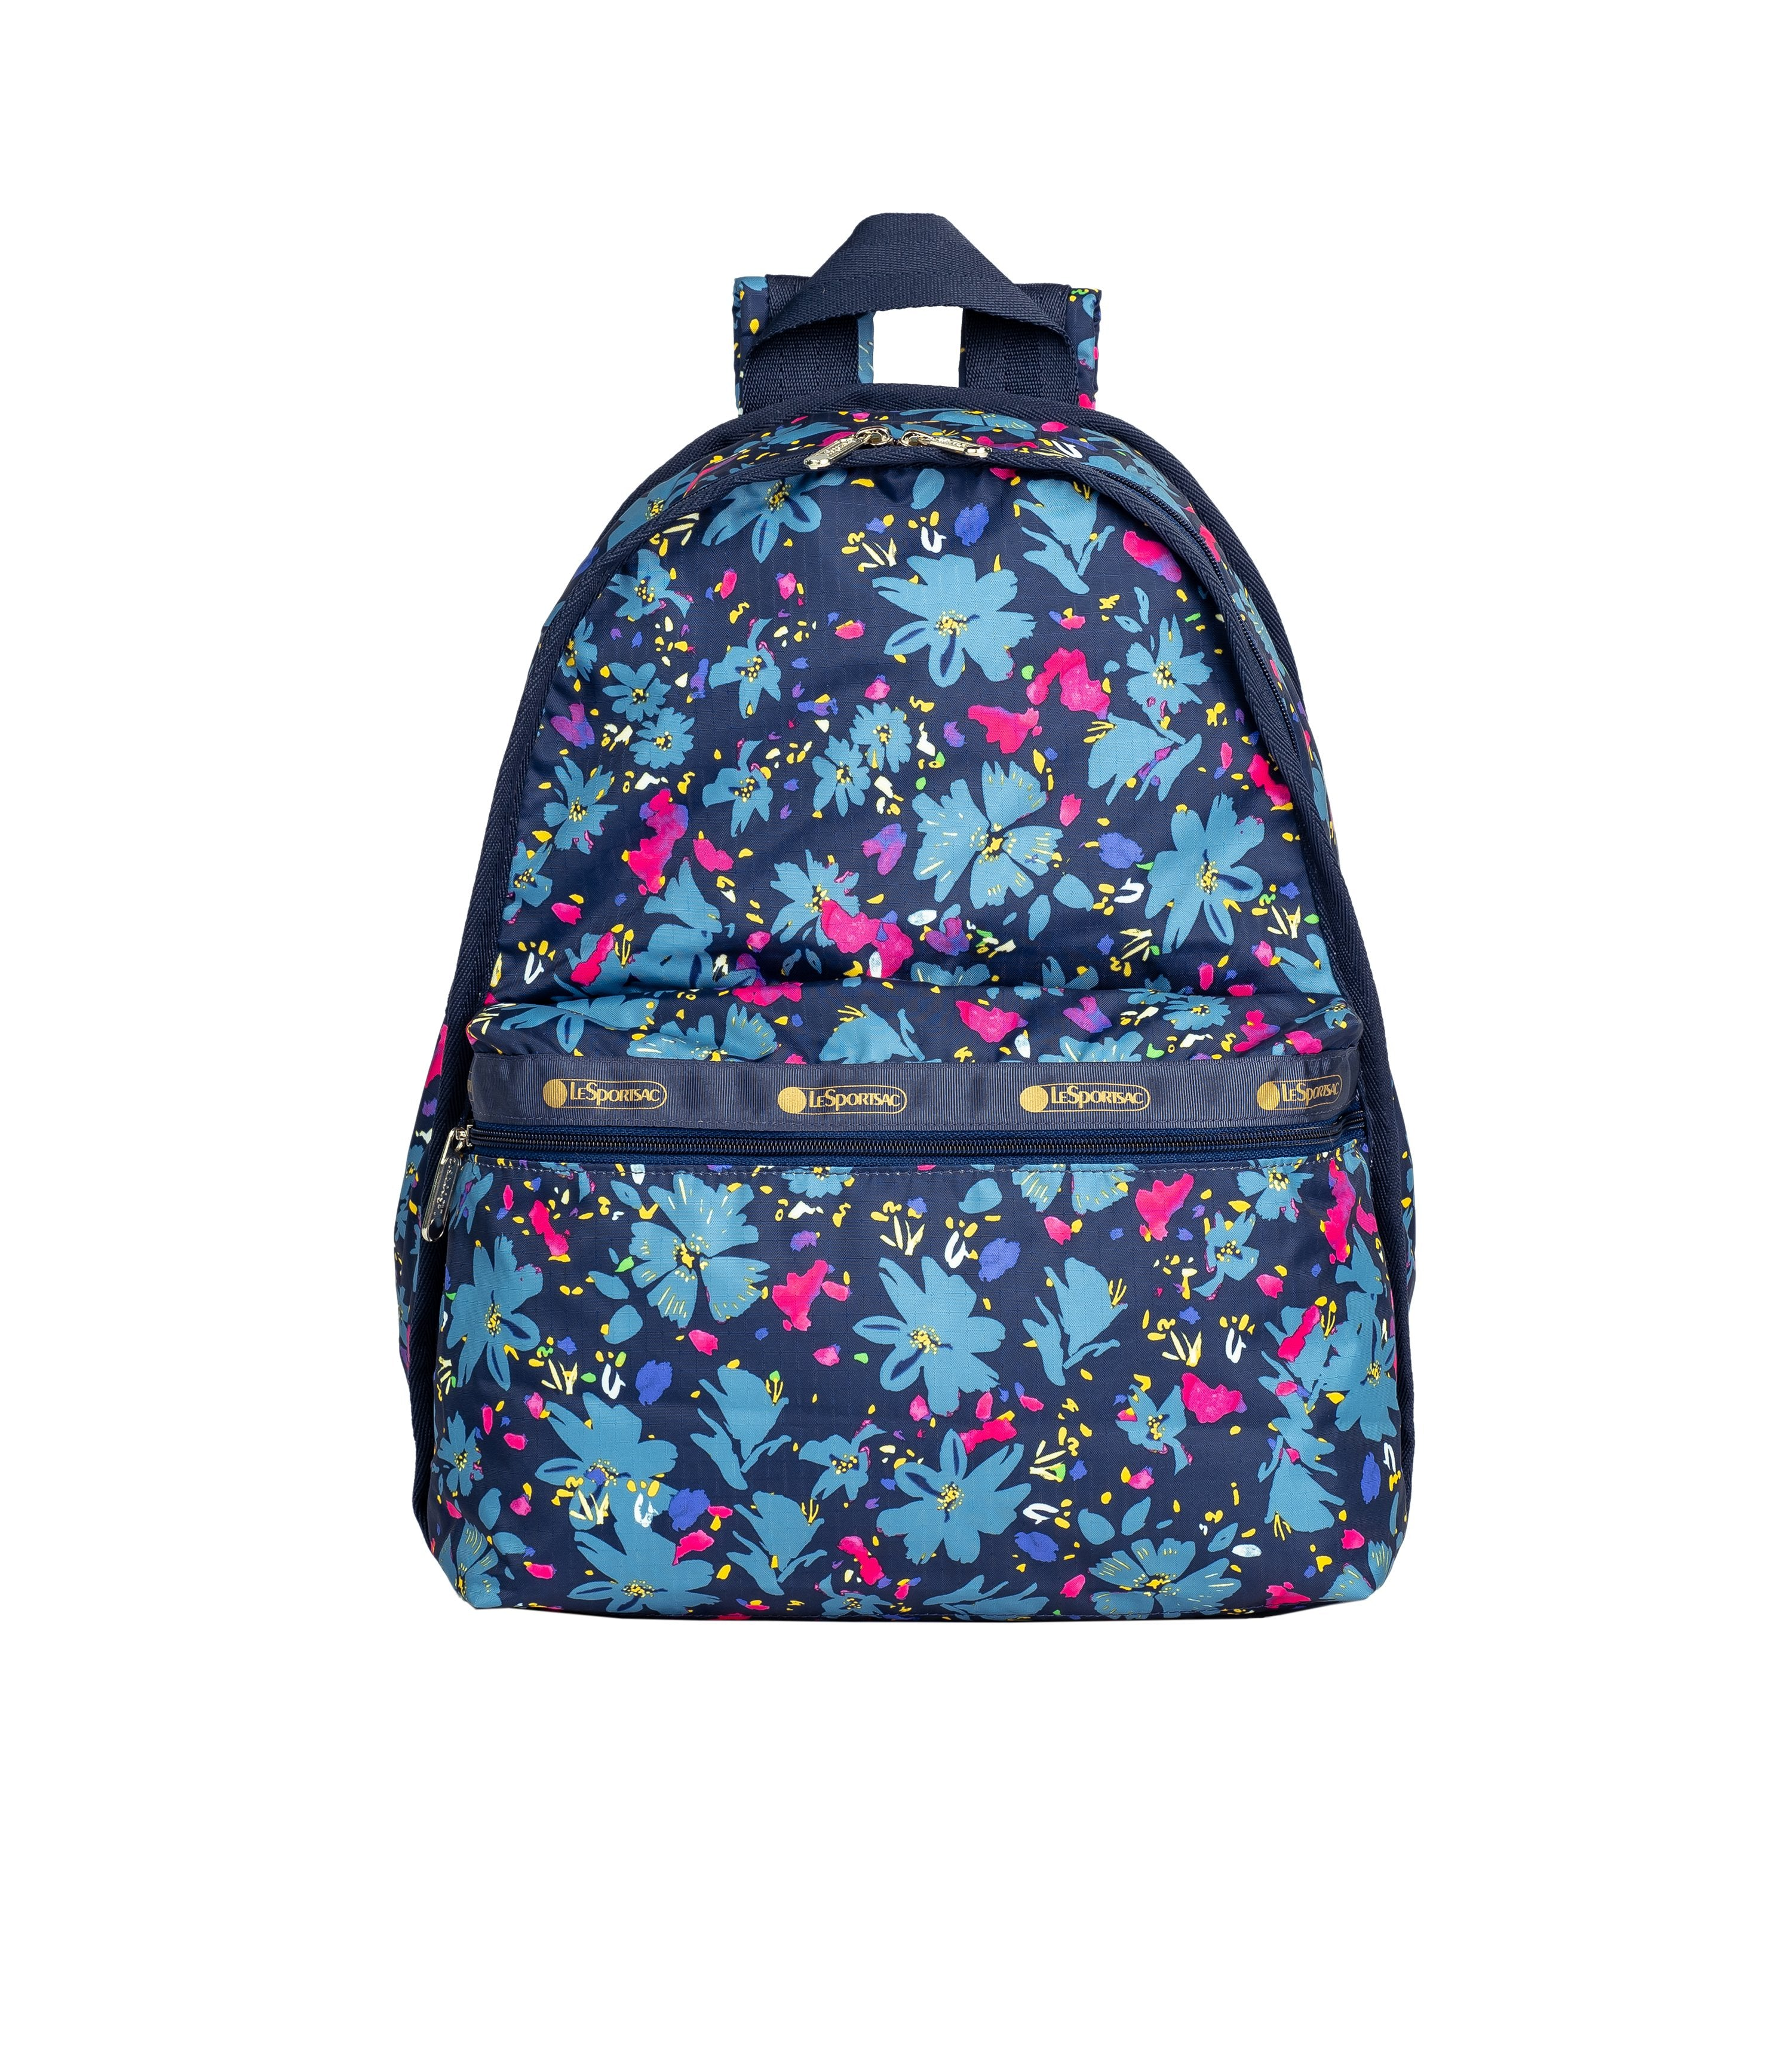 LeSportsac - Backpacks - Basic Backpack - Blowout Floral print